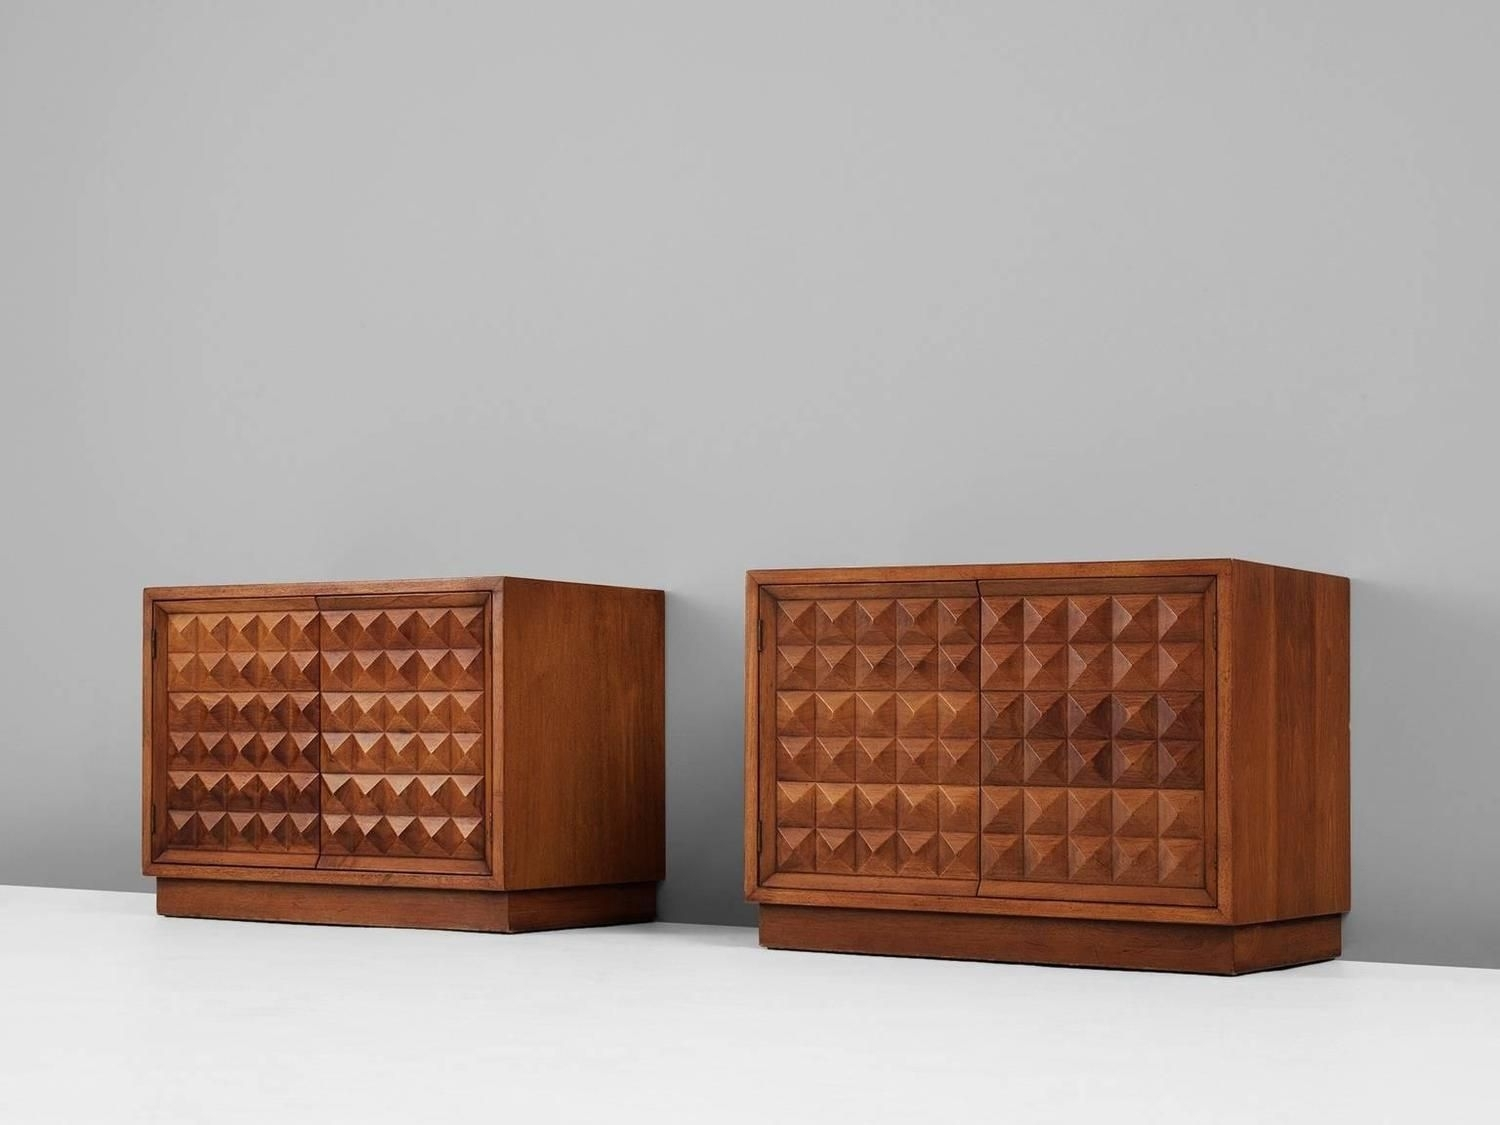 Pair Of Small Brutalist Cabinets In Walnut | Brutalist, Furniture pertaining to Walnut Small Sideboards (Image 17 of 30)